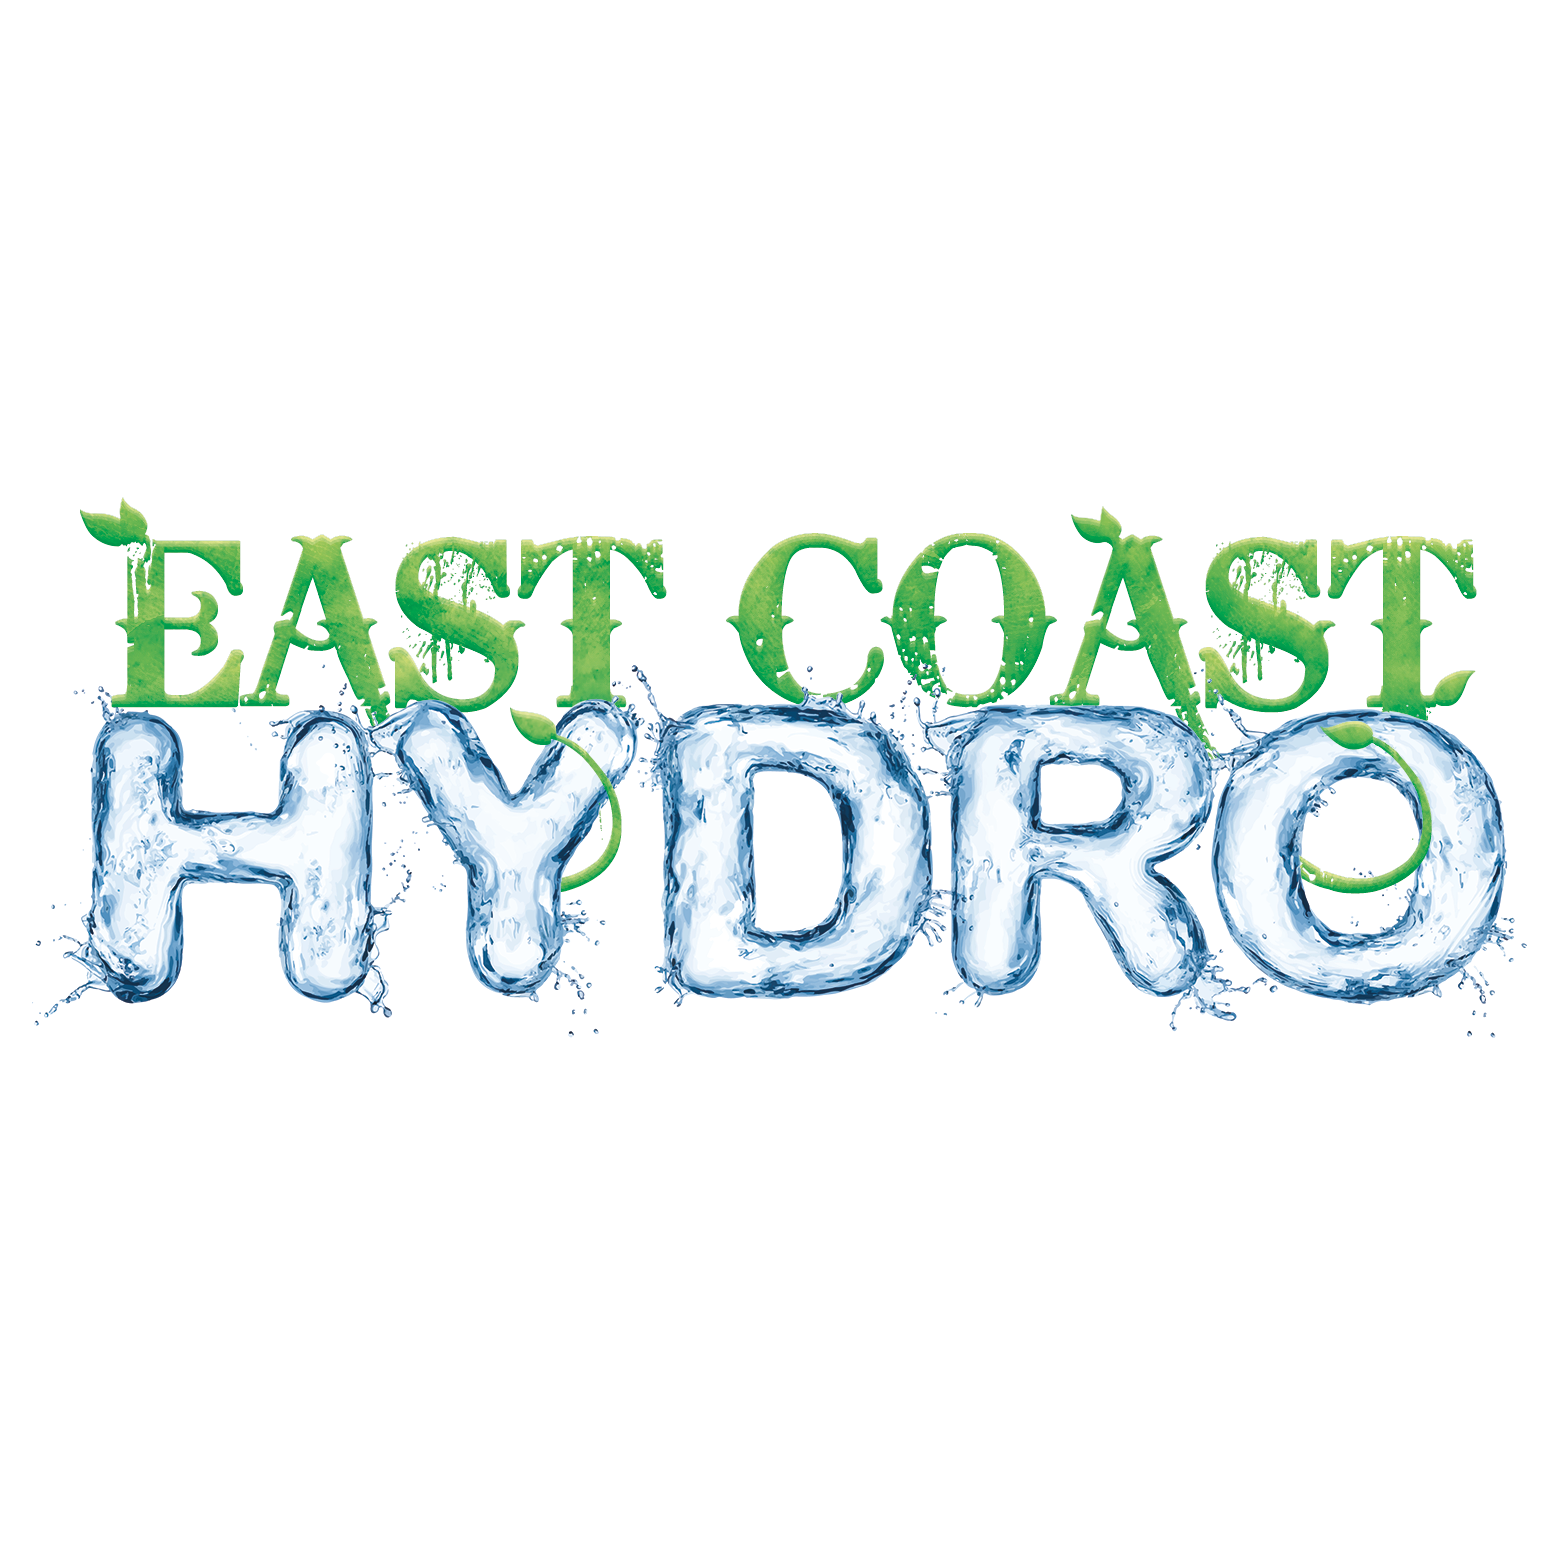 East Coast Hydro